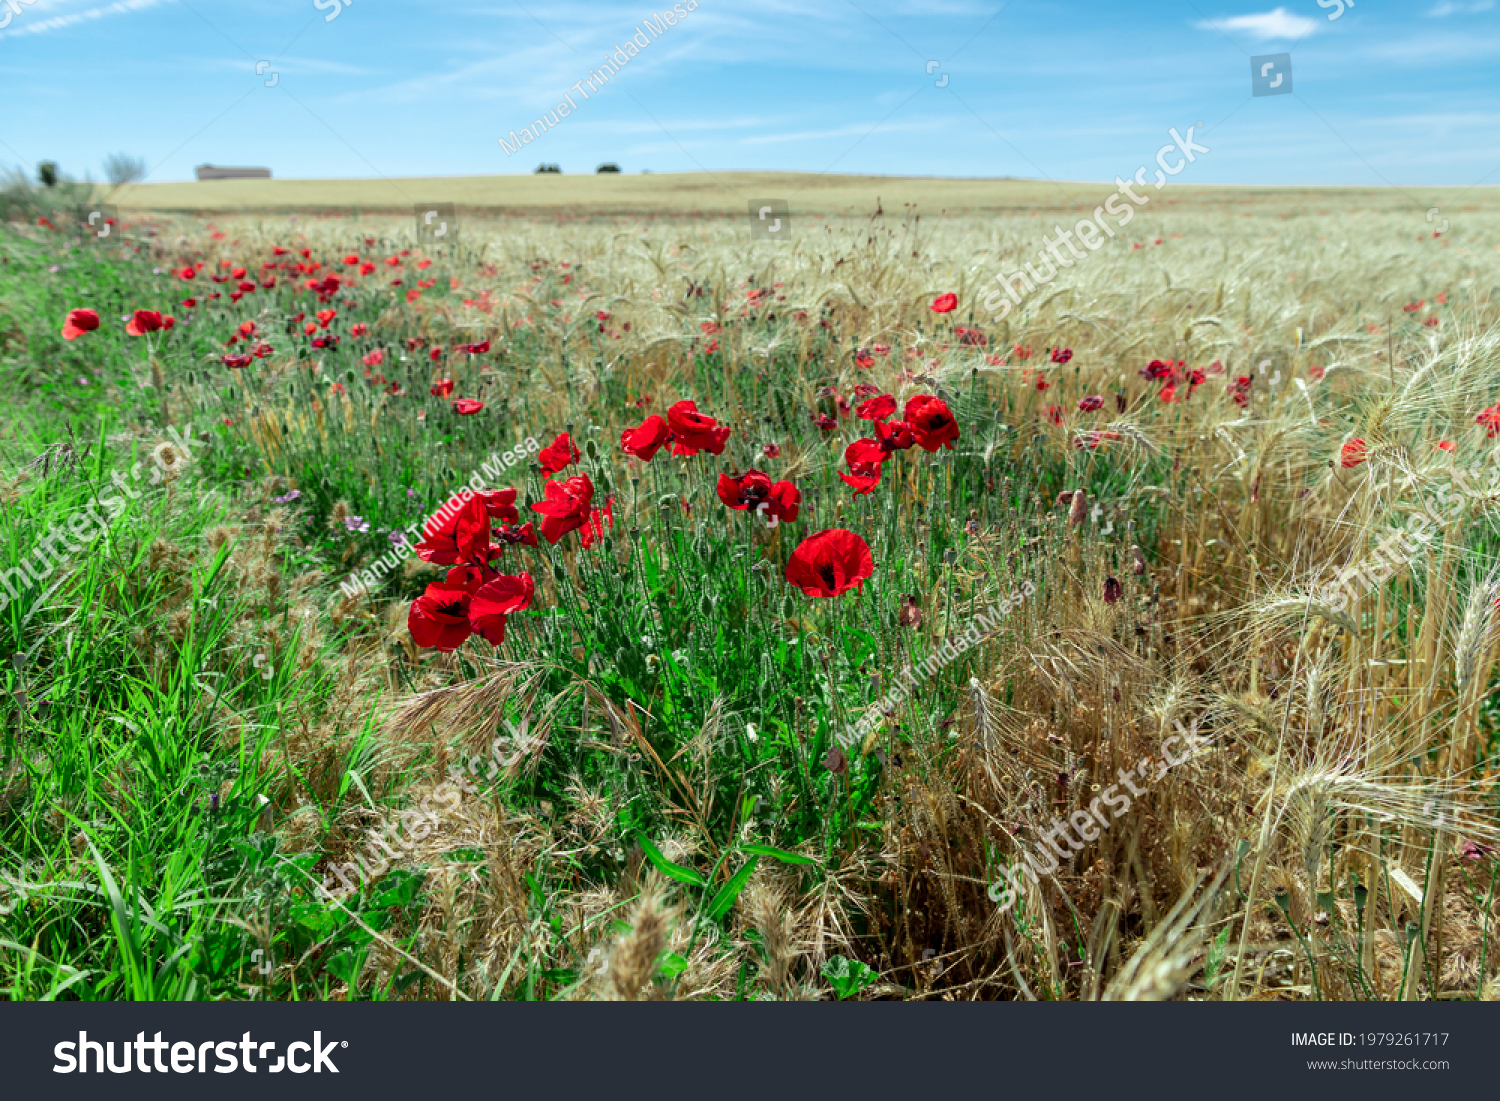 Field of red poppies among dry ears of wheat